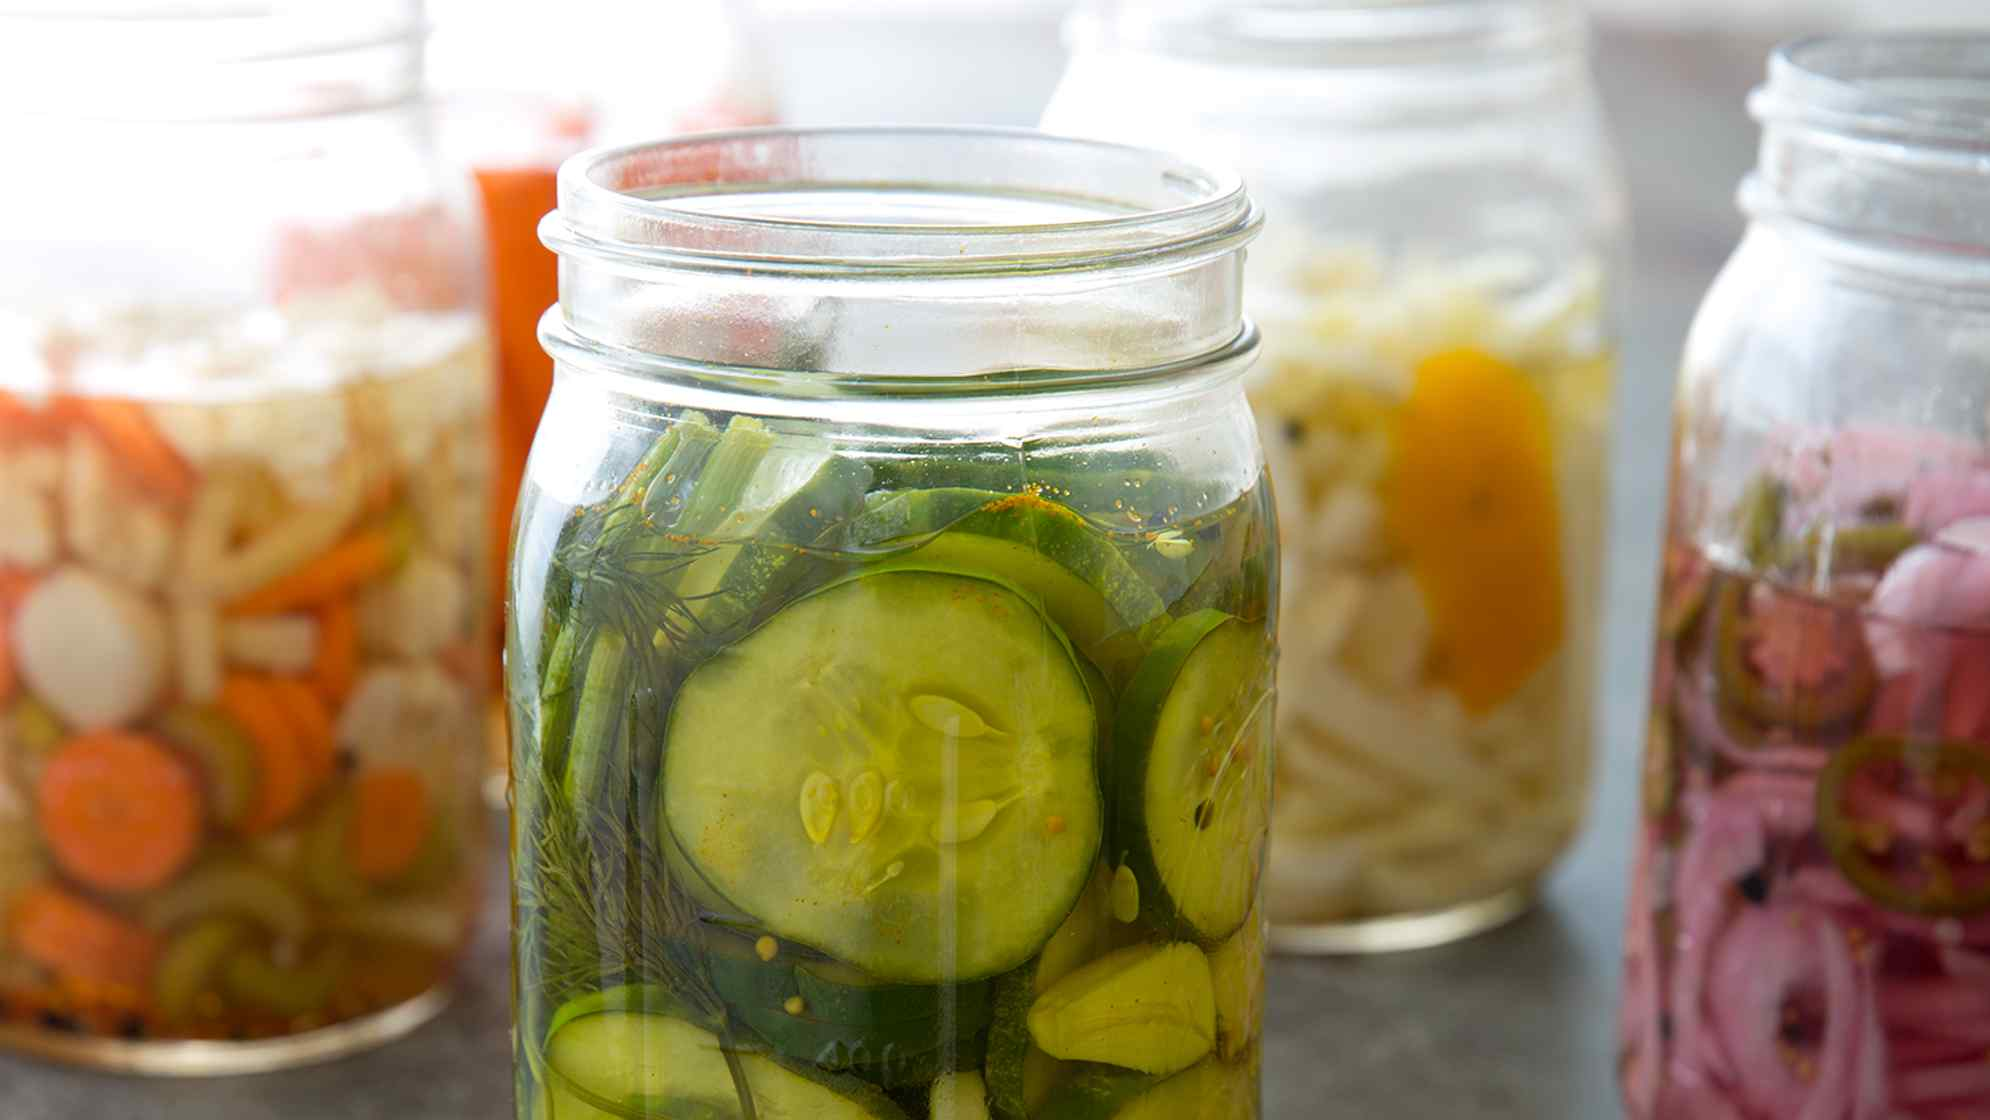 How to Make Quick Homemade Pickles